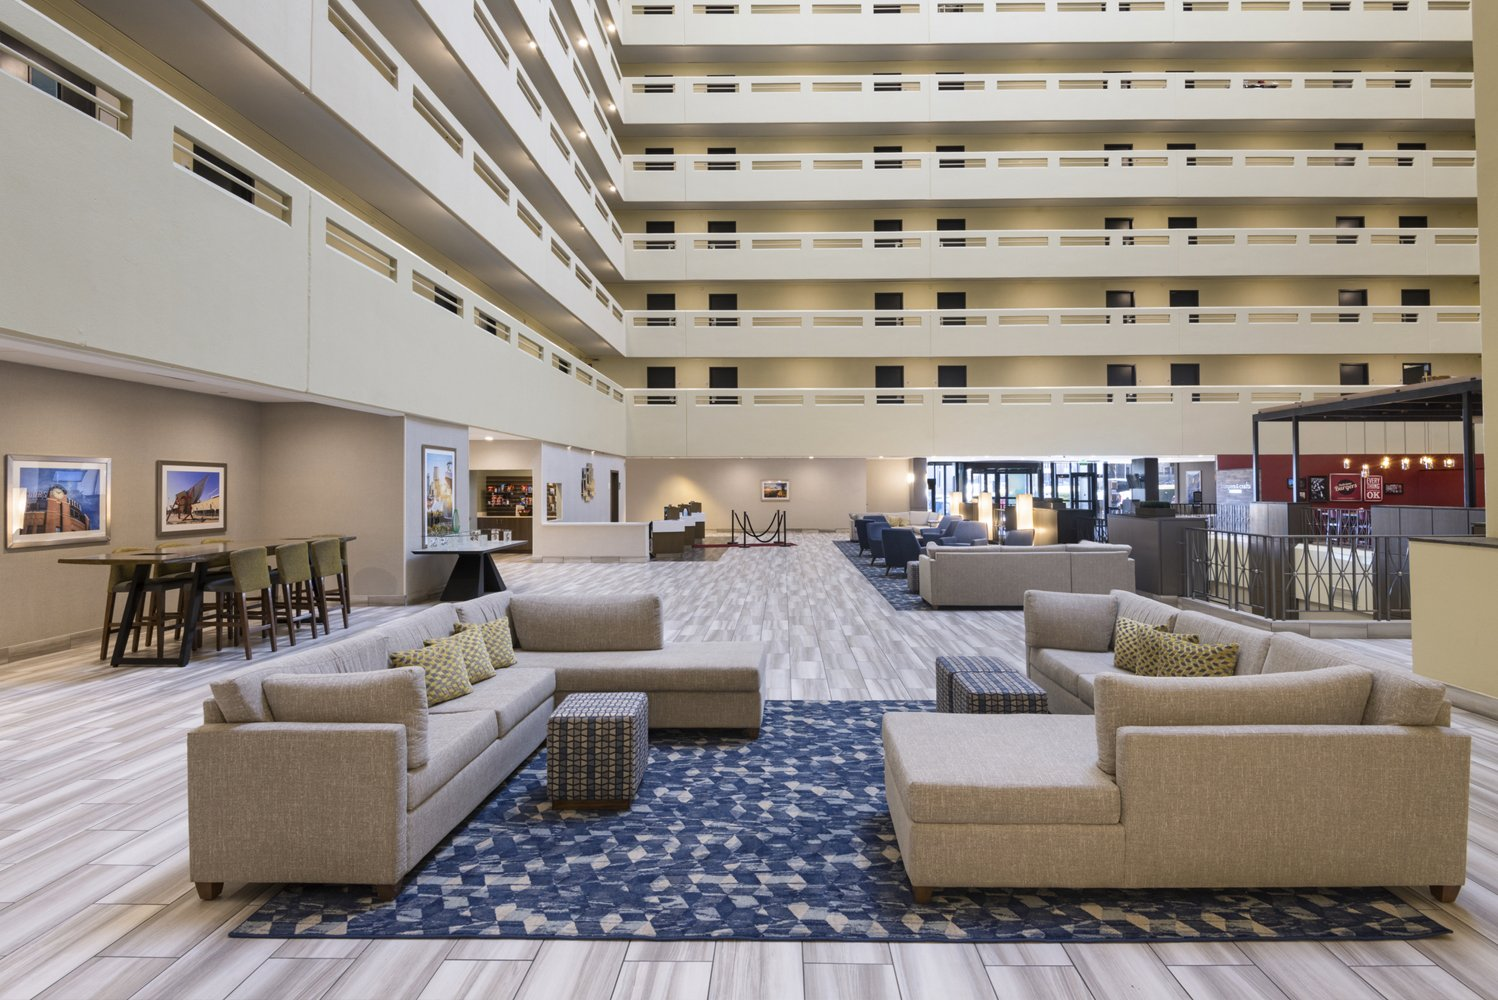 Renovated were 298 guestrooms, 20,000 square feet of meeting space, 3,210 square feet of public spaces and the hotel's restaurant, Burgers & Crafts.